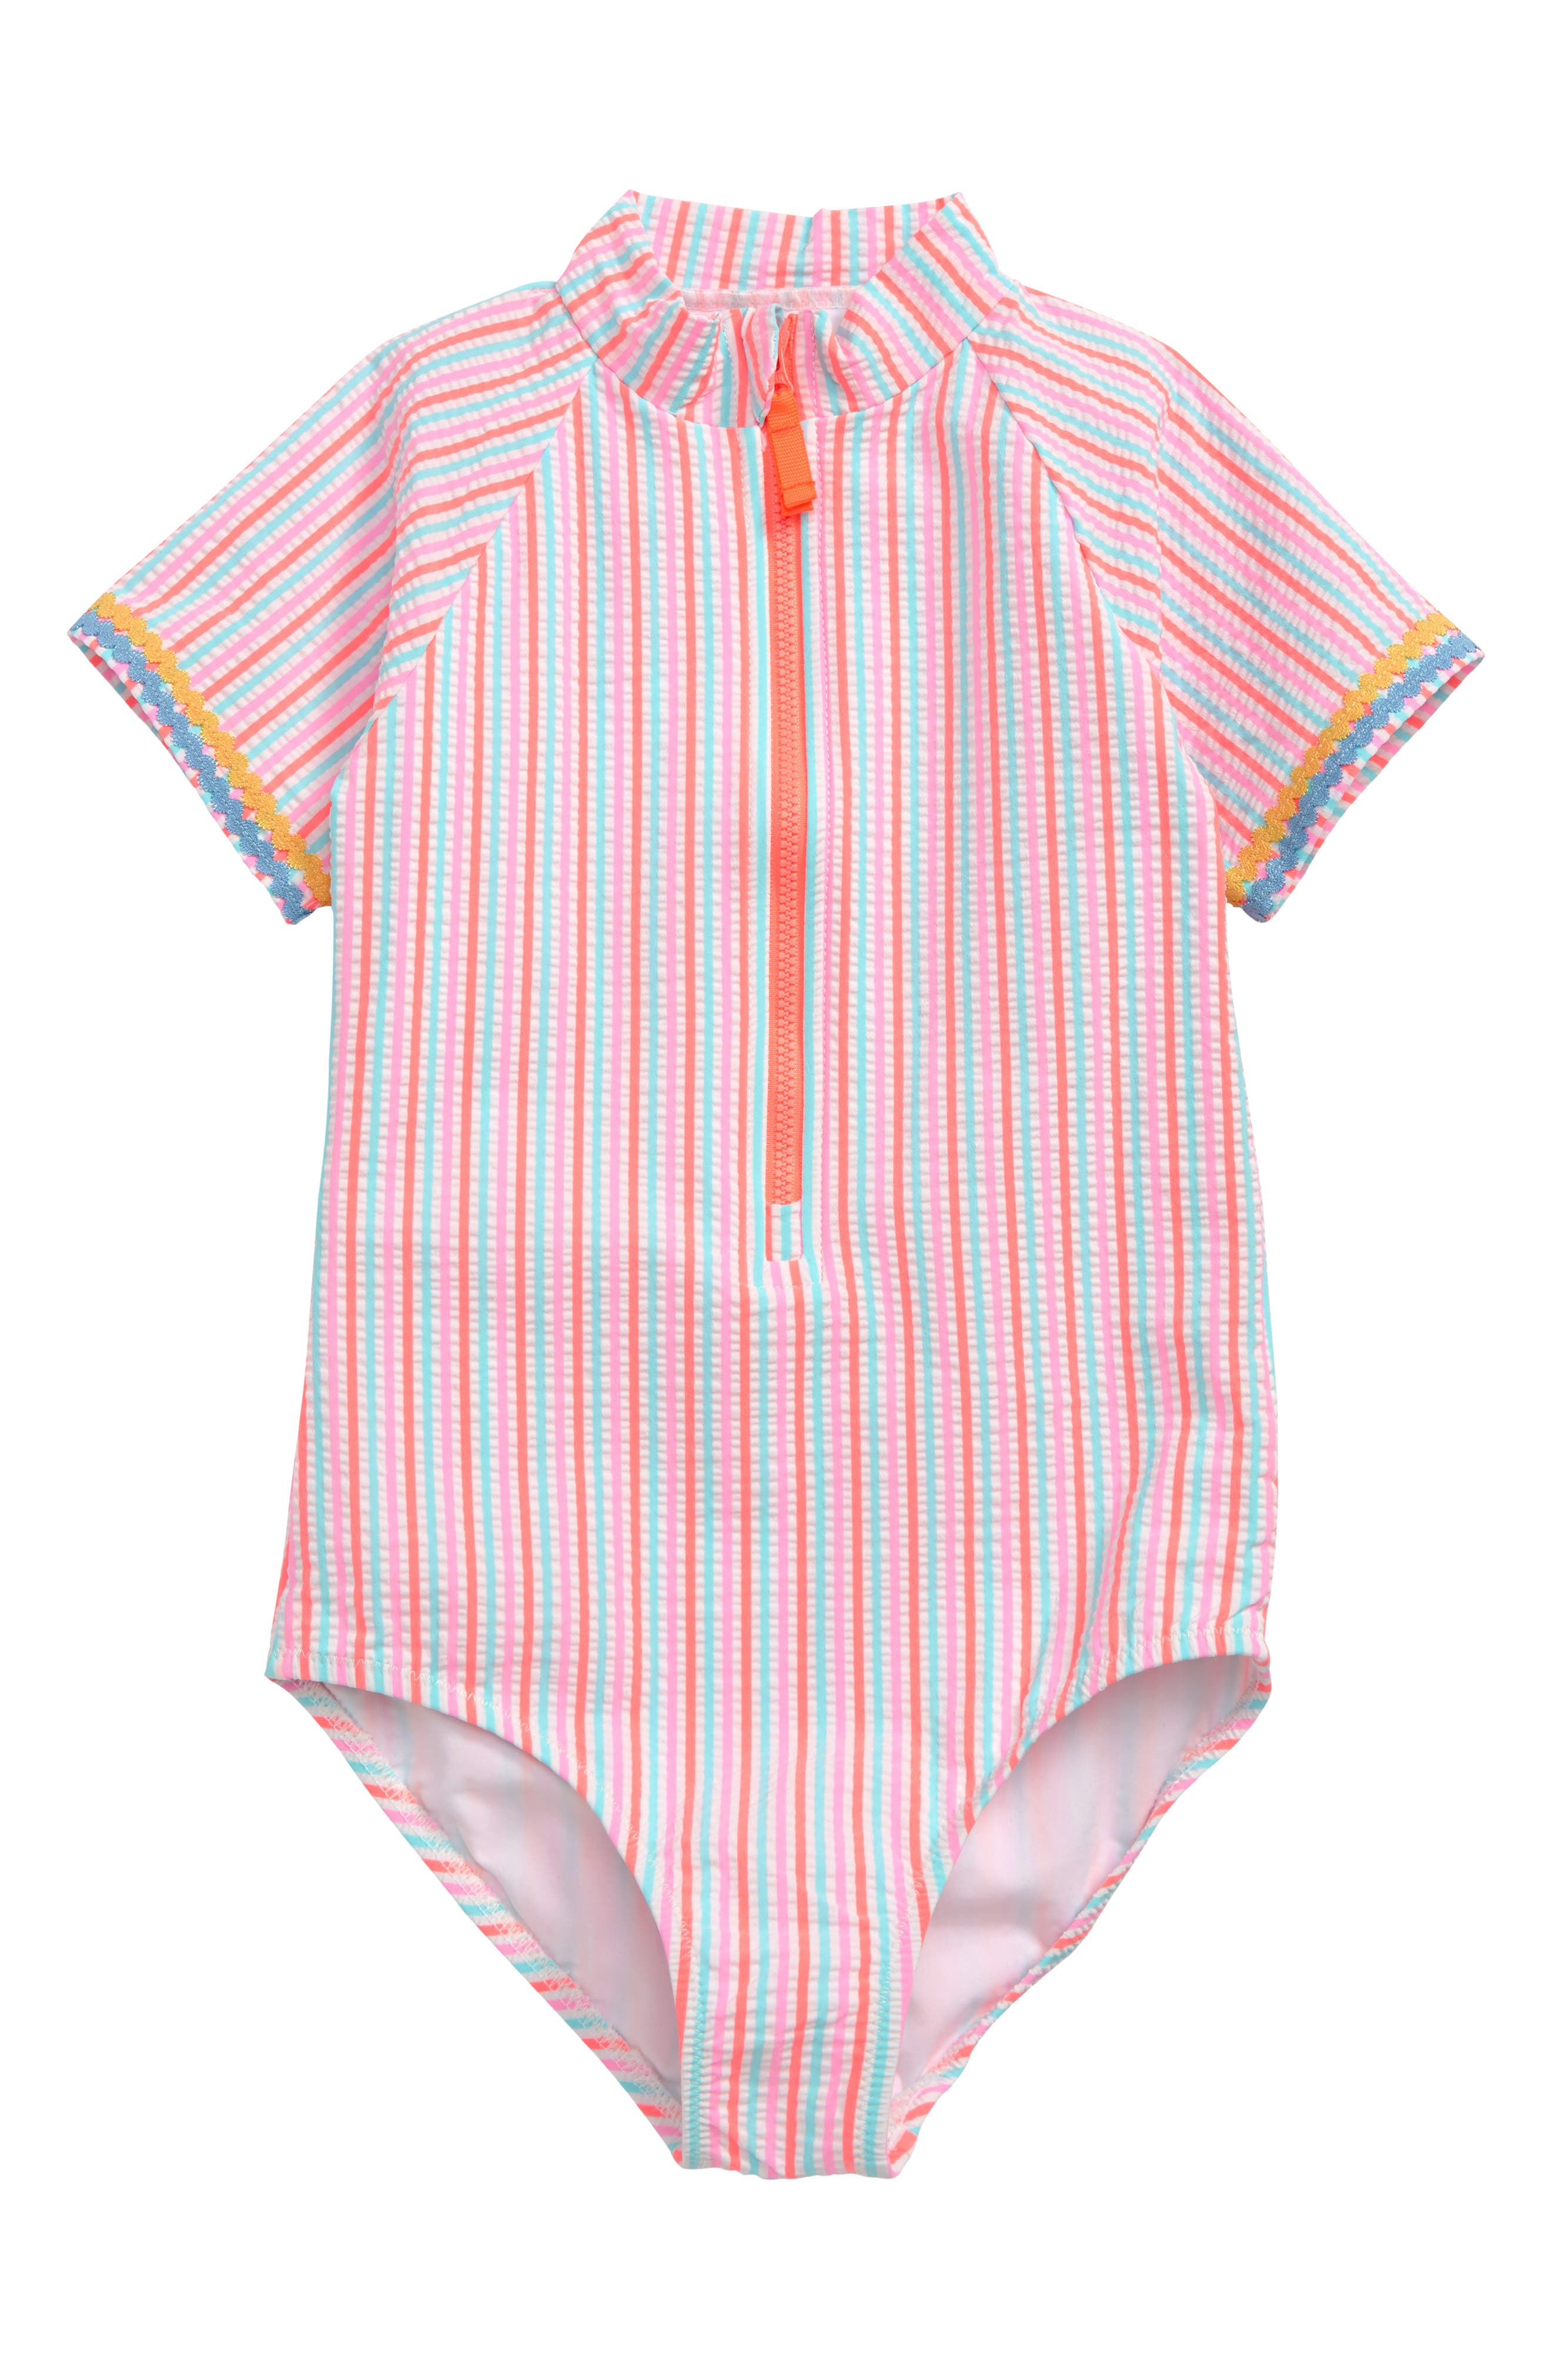 Girls Crewcuts By Jcrew Short Sleeve OnePiece Swimsuit Size 12  Pink